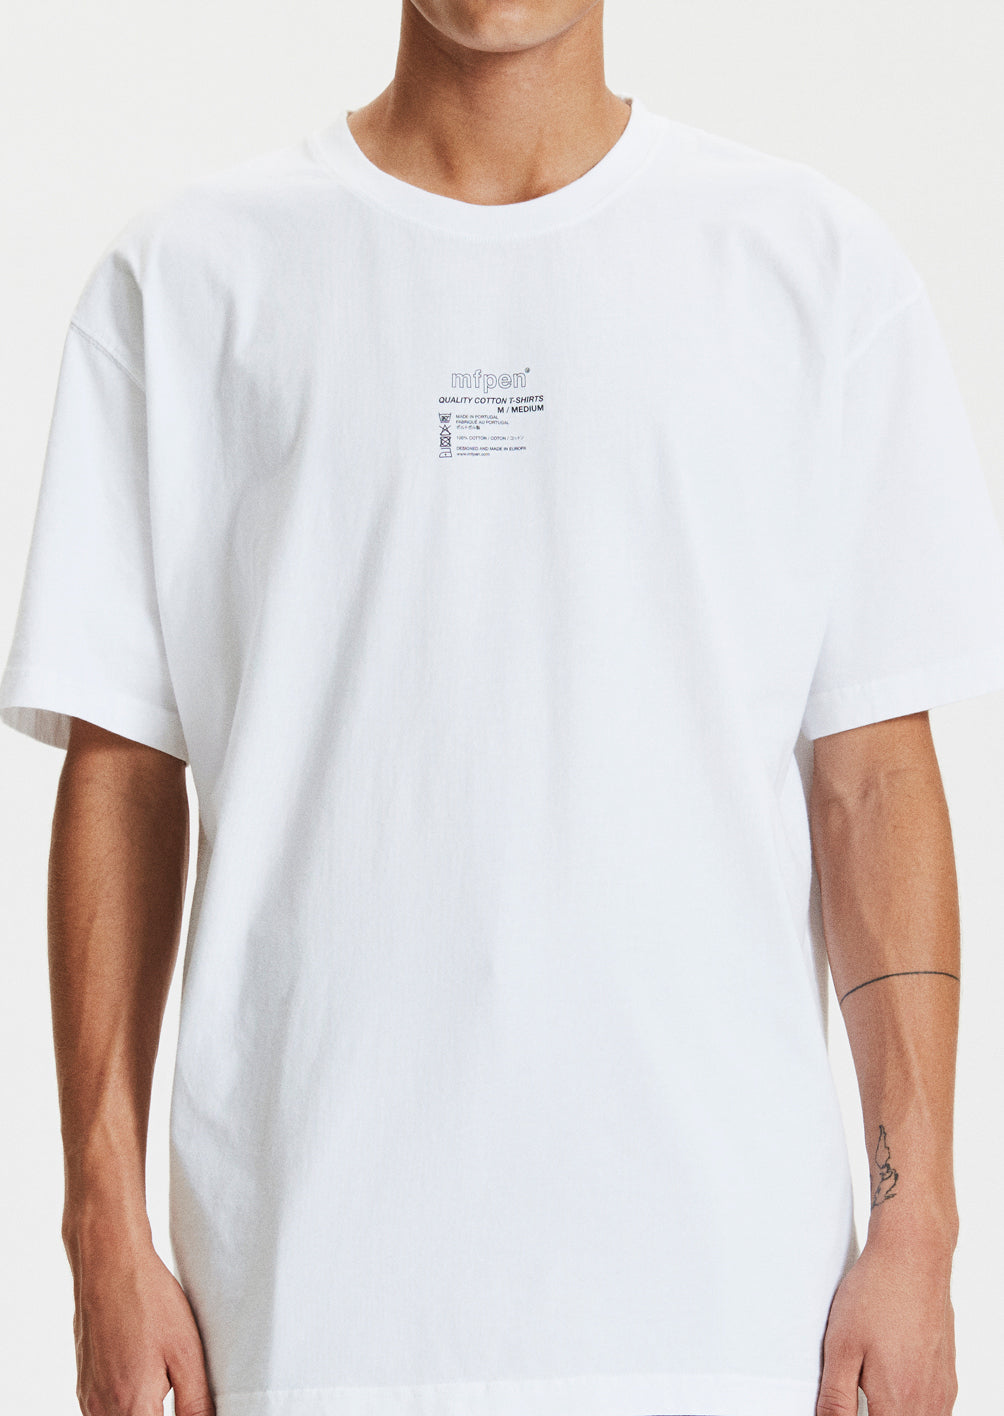 TAGLESS T-SHIRT - WHITE